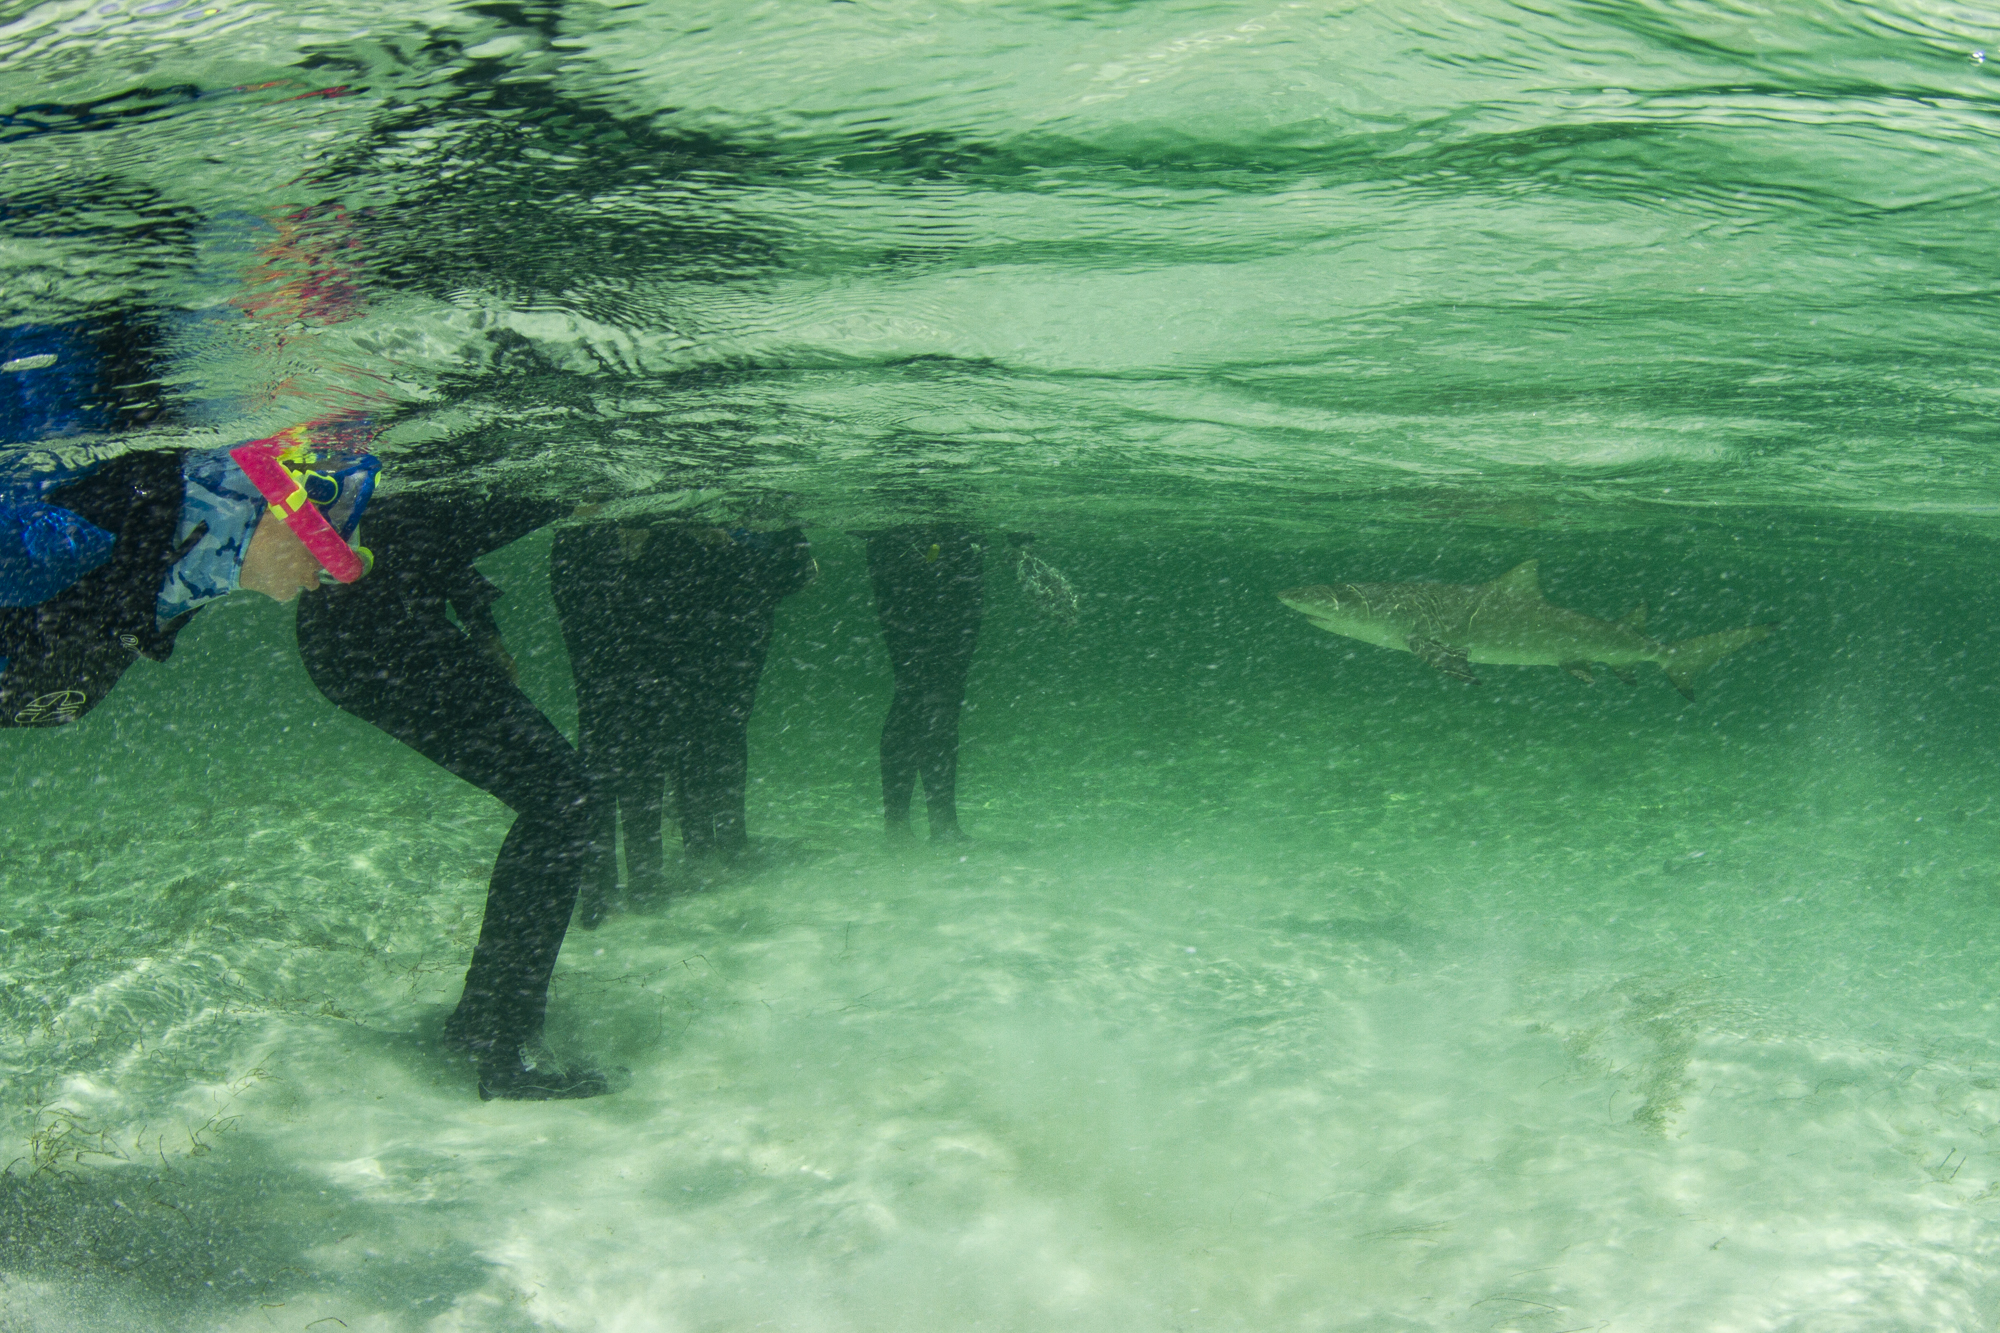 A lemon shark comes in for a close up